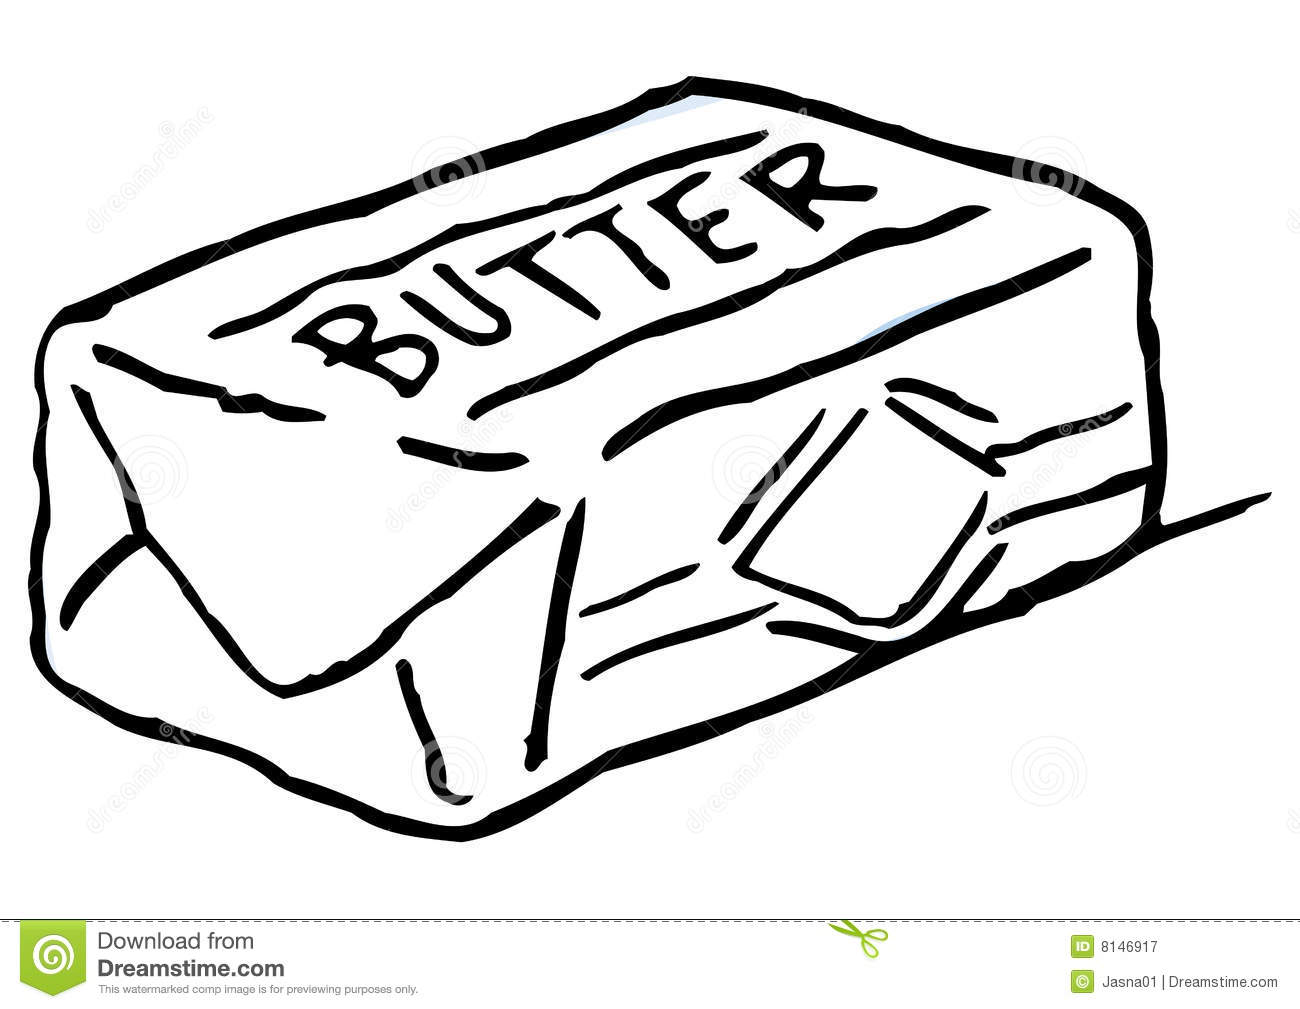 Royalty Free Stock Photography Fresh Butter Image8146917 on cup of juice clip art